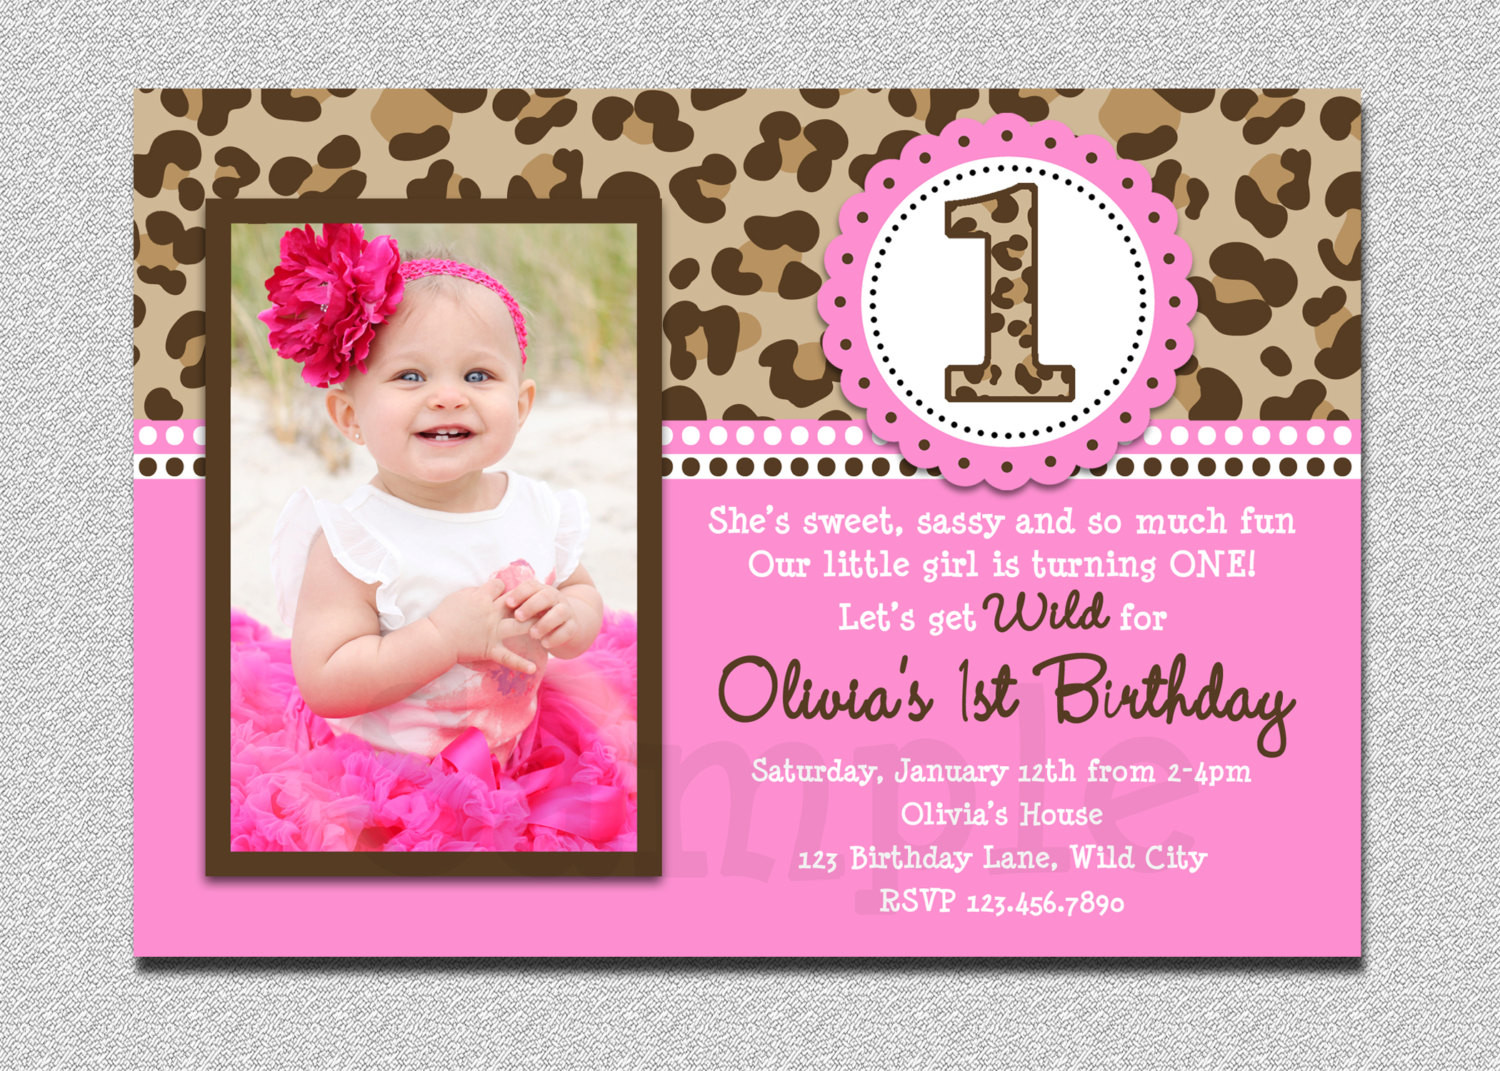 Best ideas about 1st Birthday Girl Invitations . Save or Pin Leopard Birthday Invitation 1st Birthday Party Invitation Now.